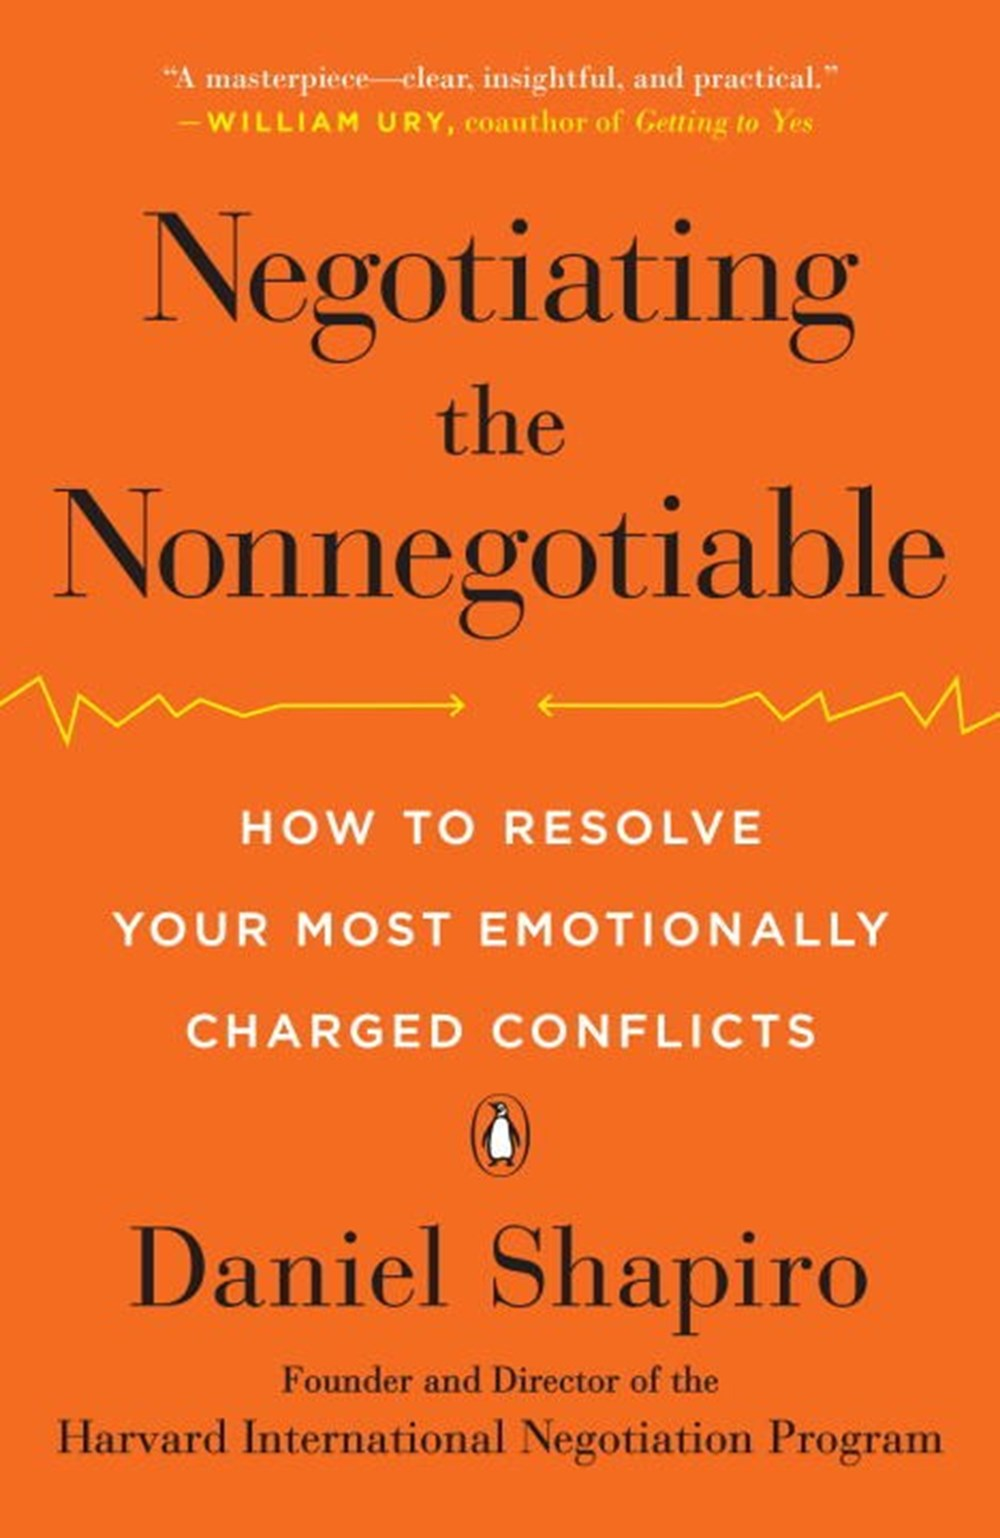 Negotiating the Nonnegotiable How to Resolve Your Most Emotionally Charged Conflicts